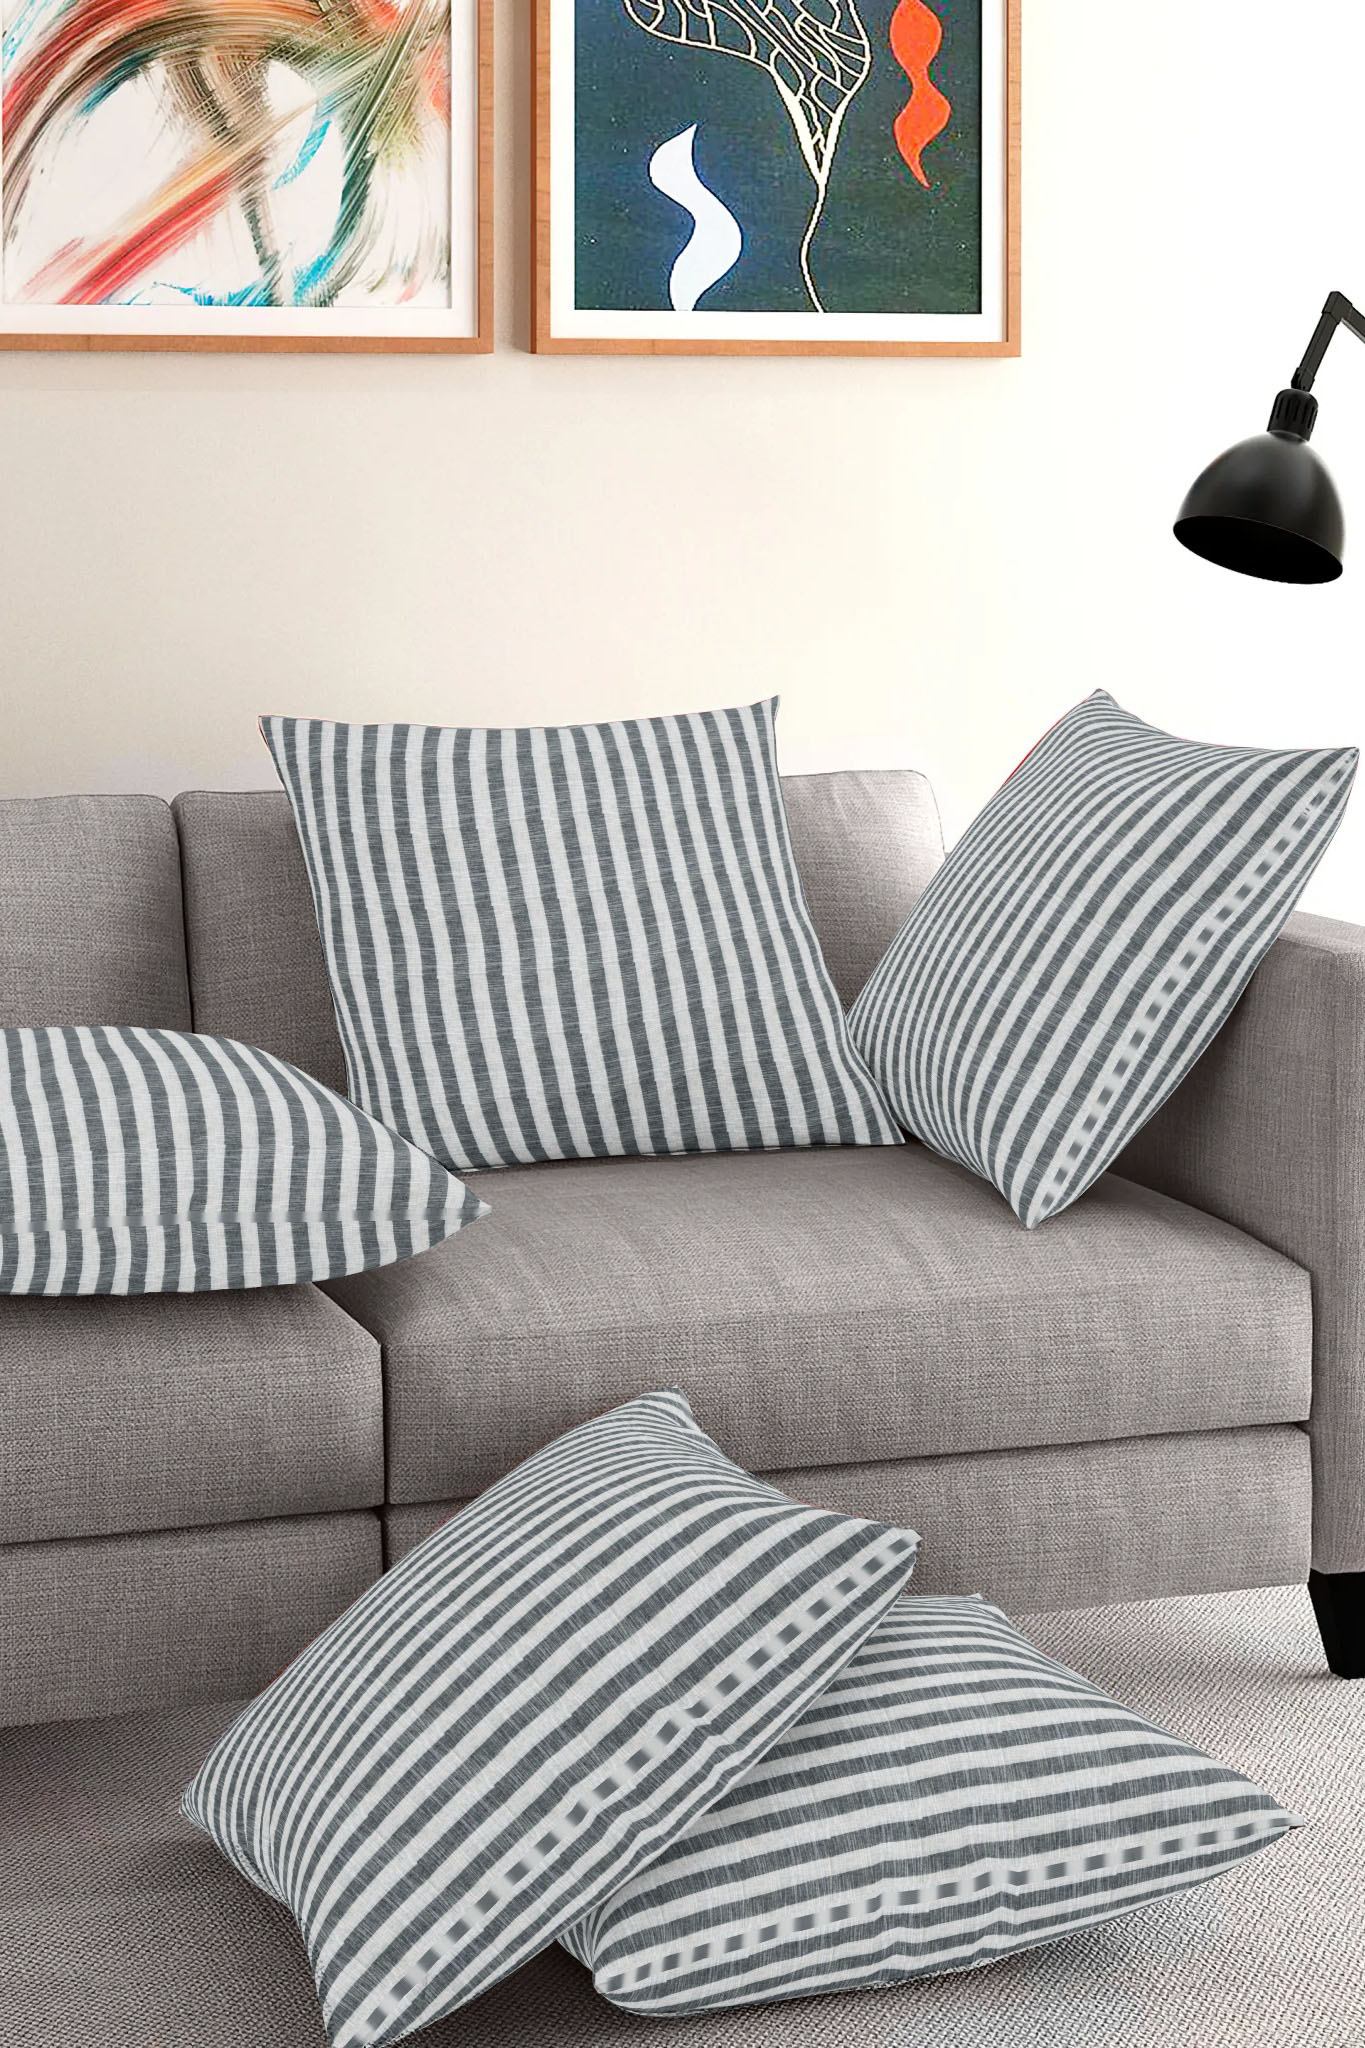 Set of 5-White Gray Cotton Cushion Cover-35407-16x16 Inches